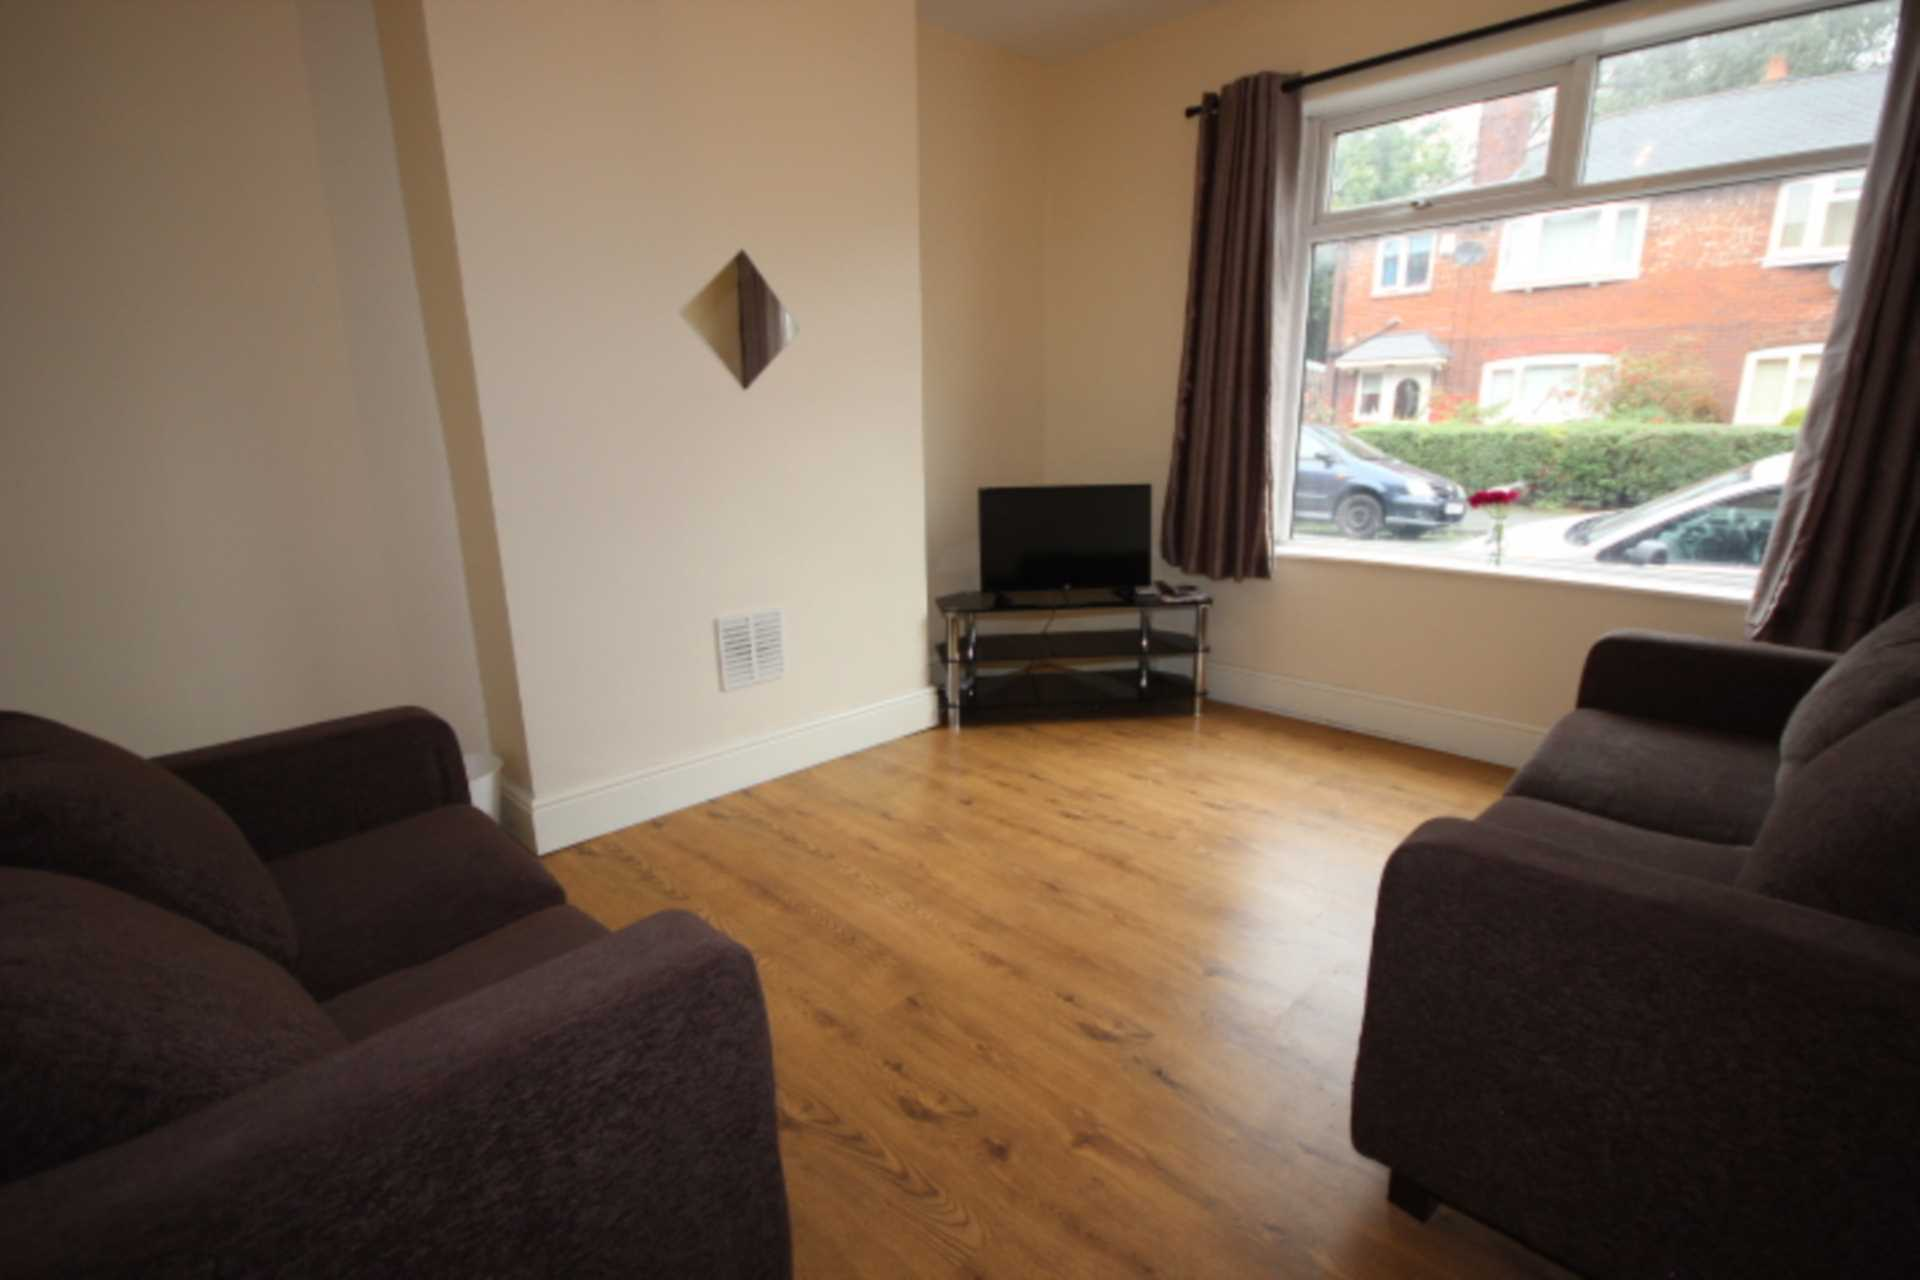 Piccadilly Property Management Ltd - 1 Bedroom Room (Double), Kingswood Road, Fallowfield, Manchester M14 6SB